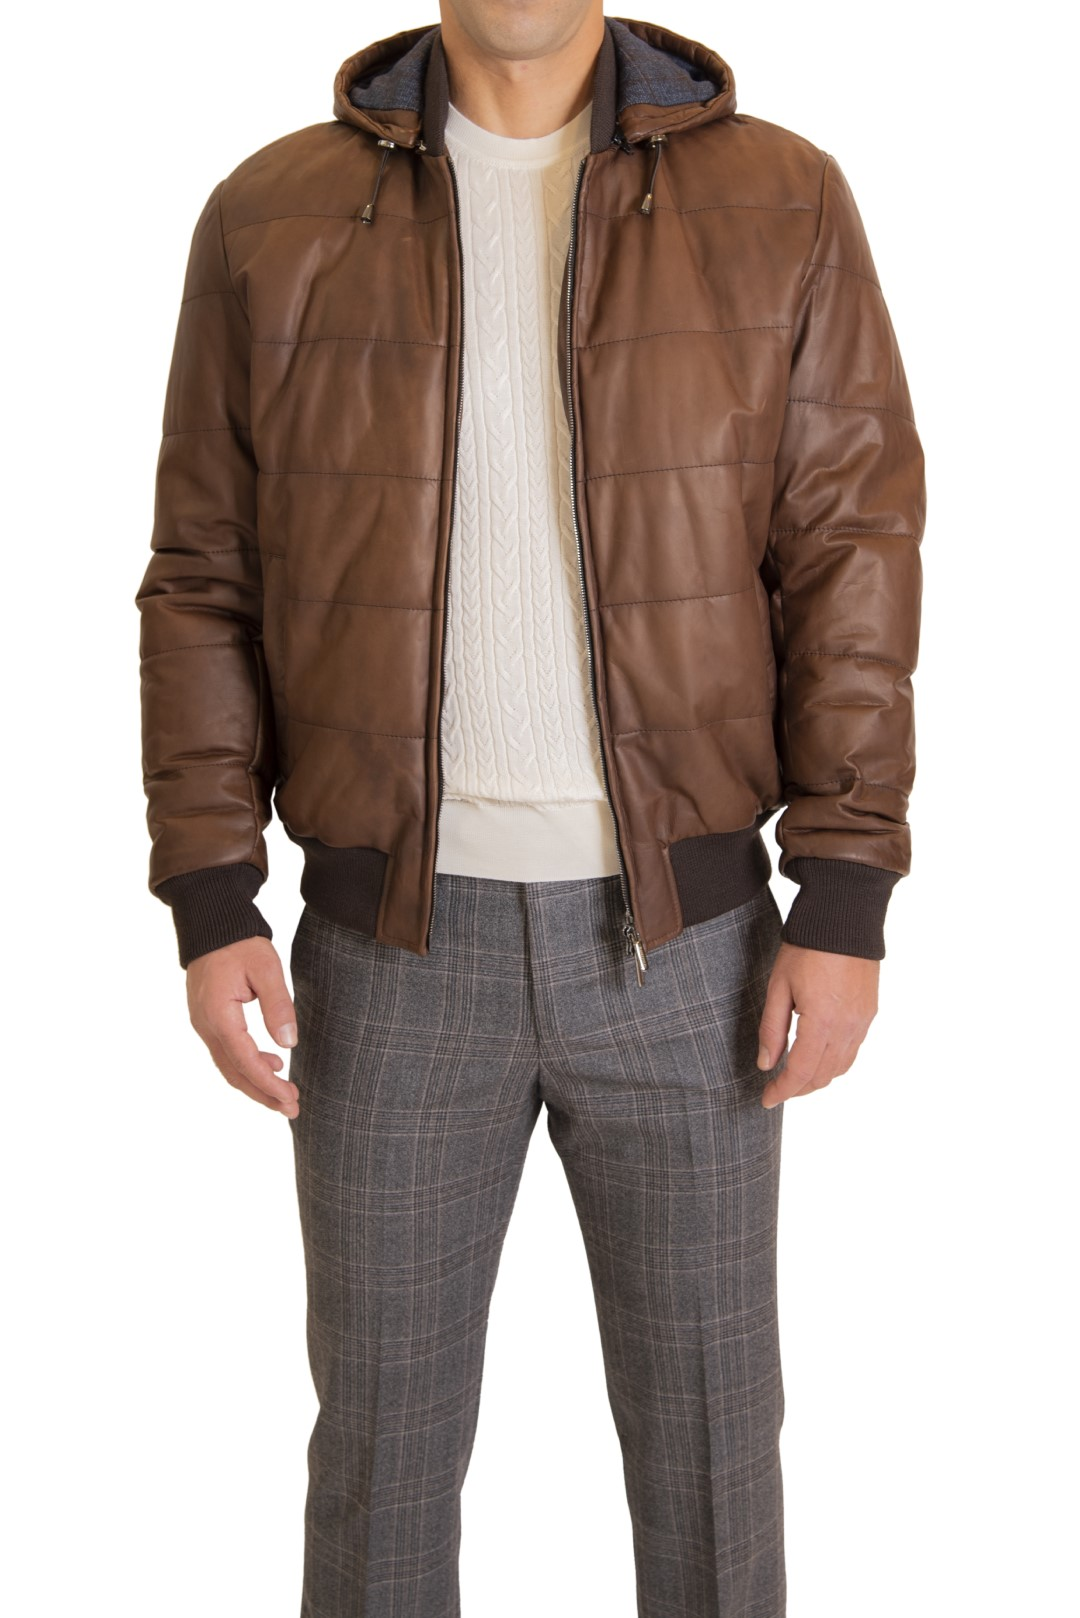 RAVAZZOLO LEATHER JACKET